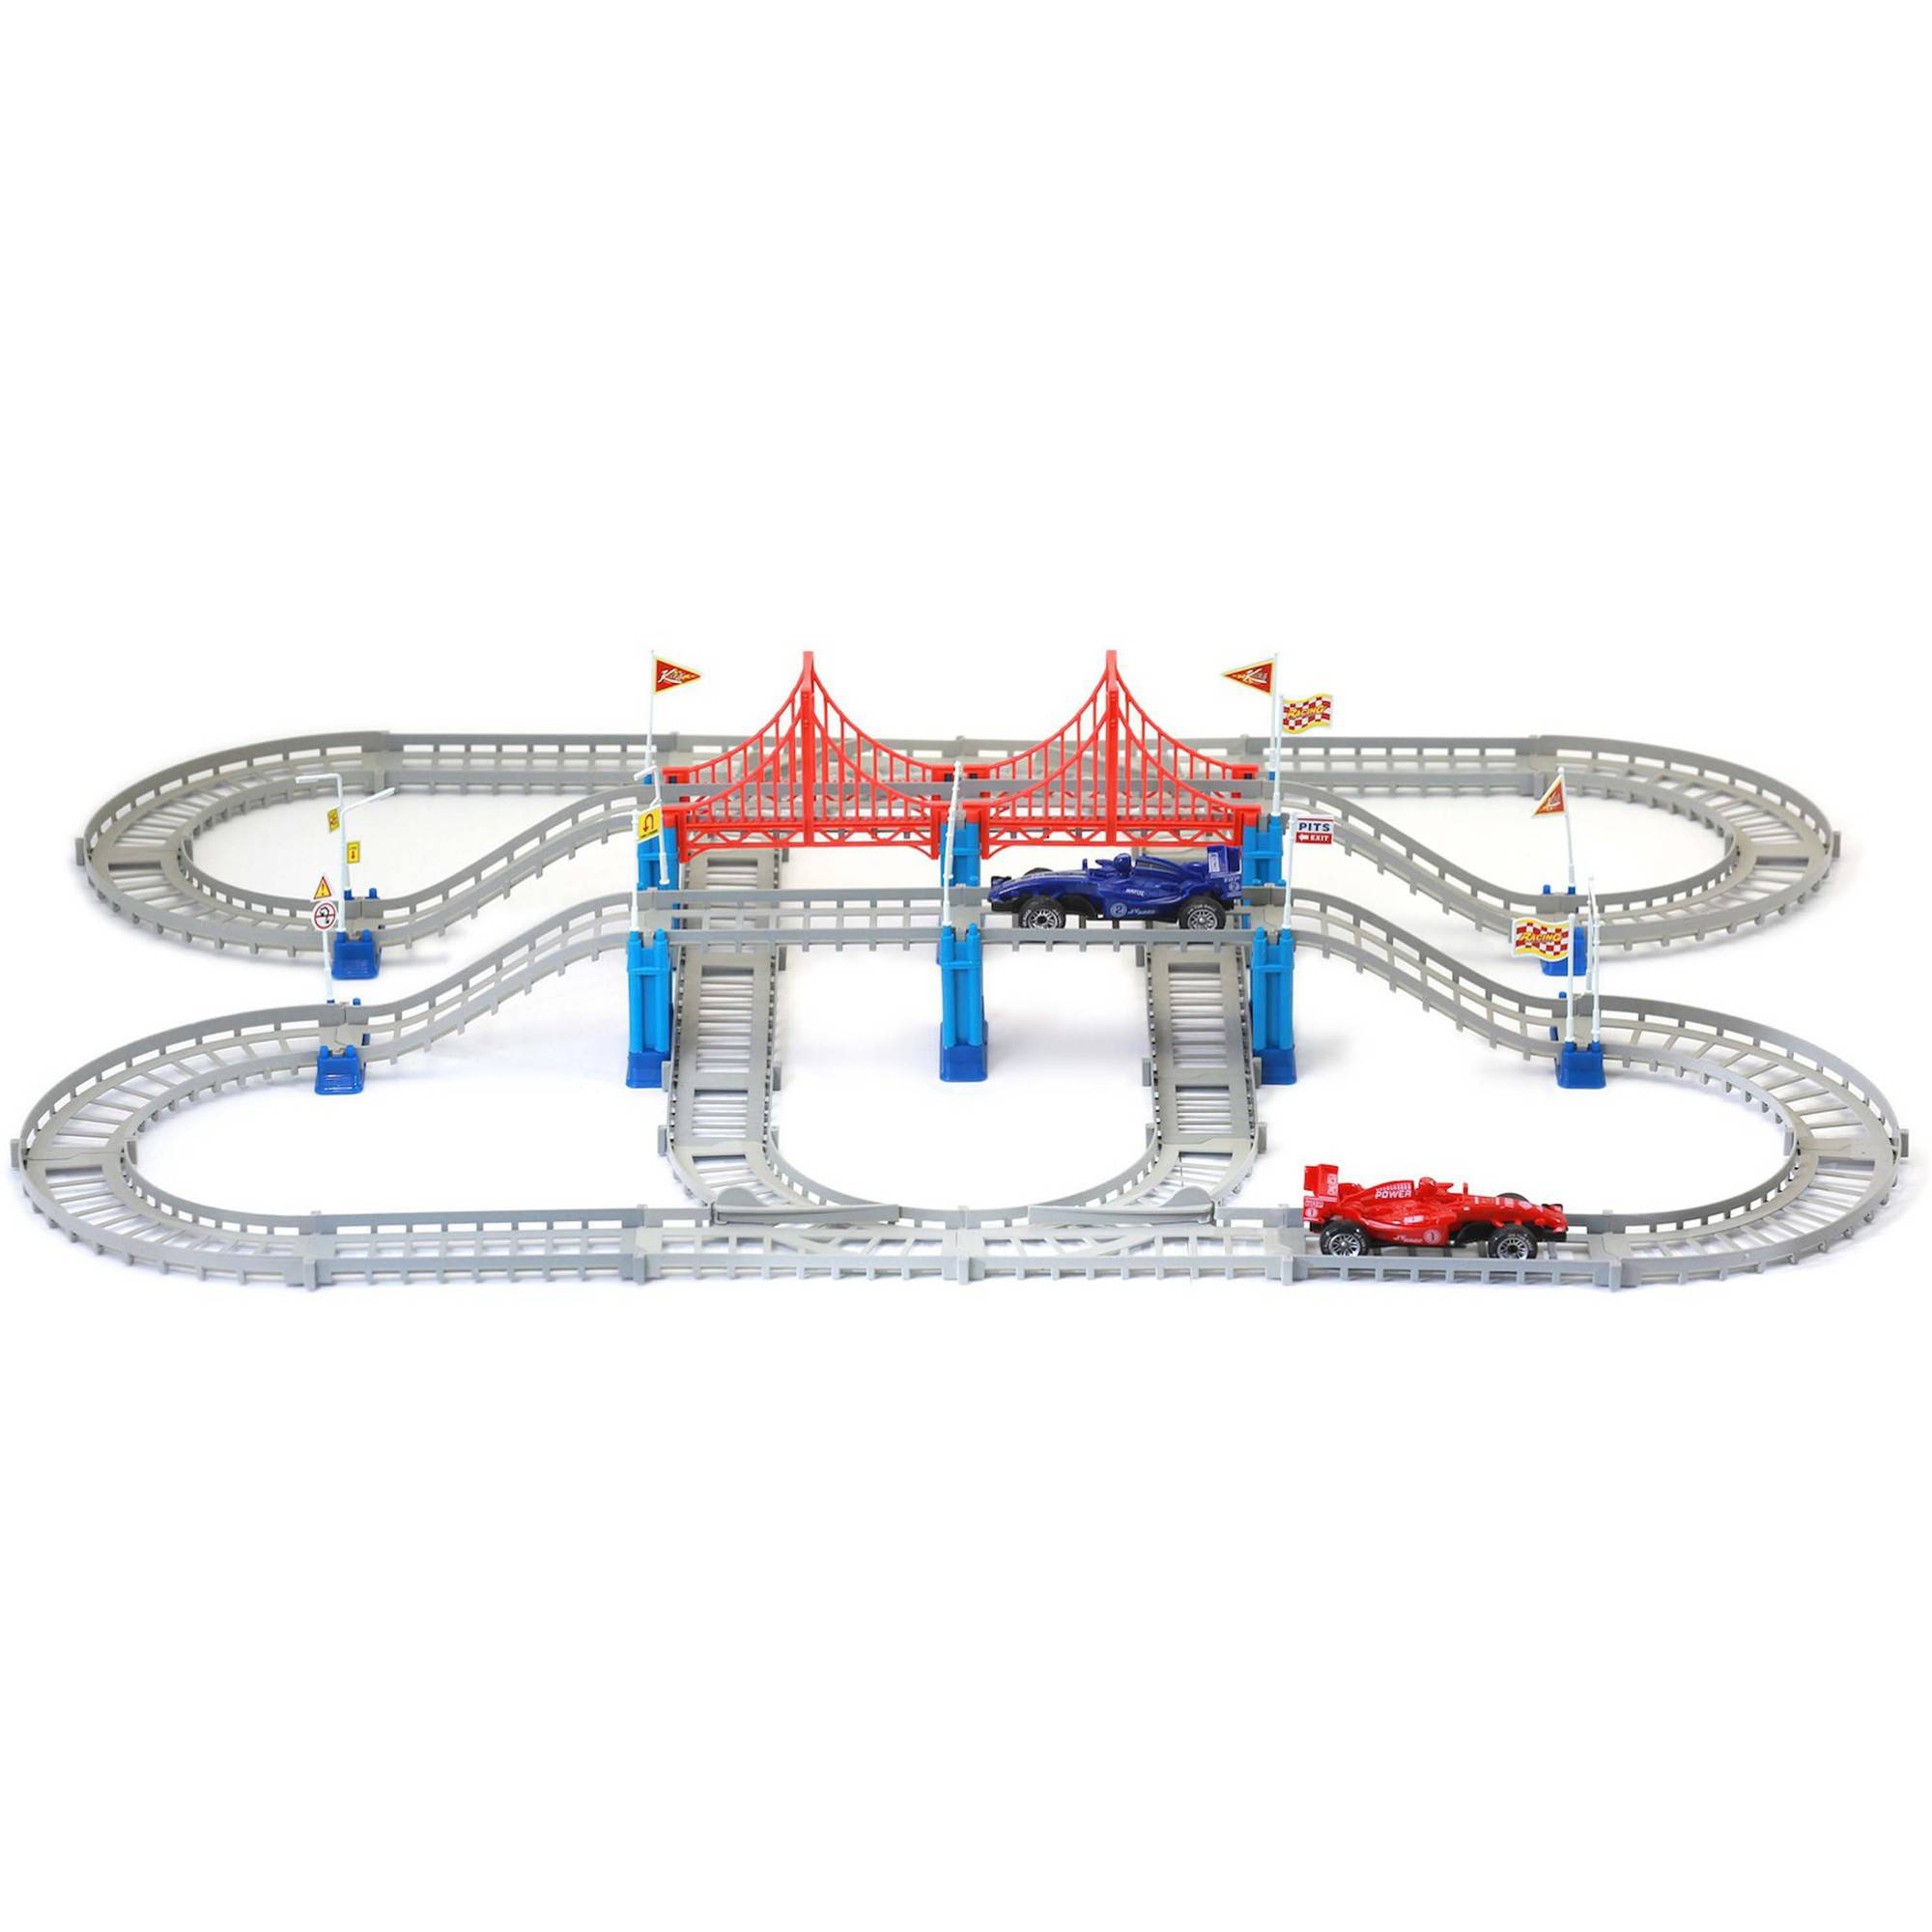 Mukikim Build A Track, The Race